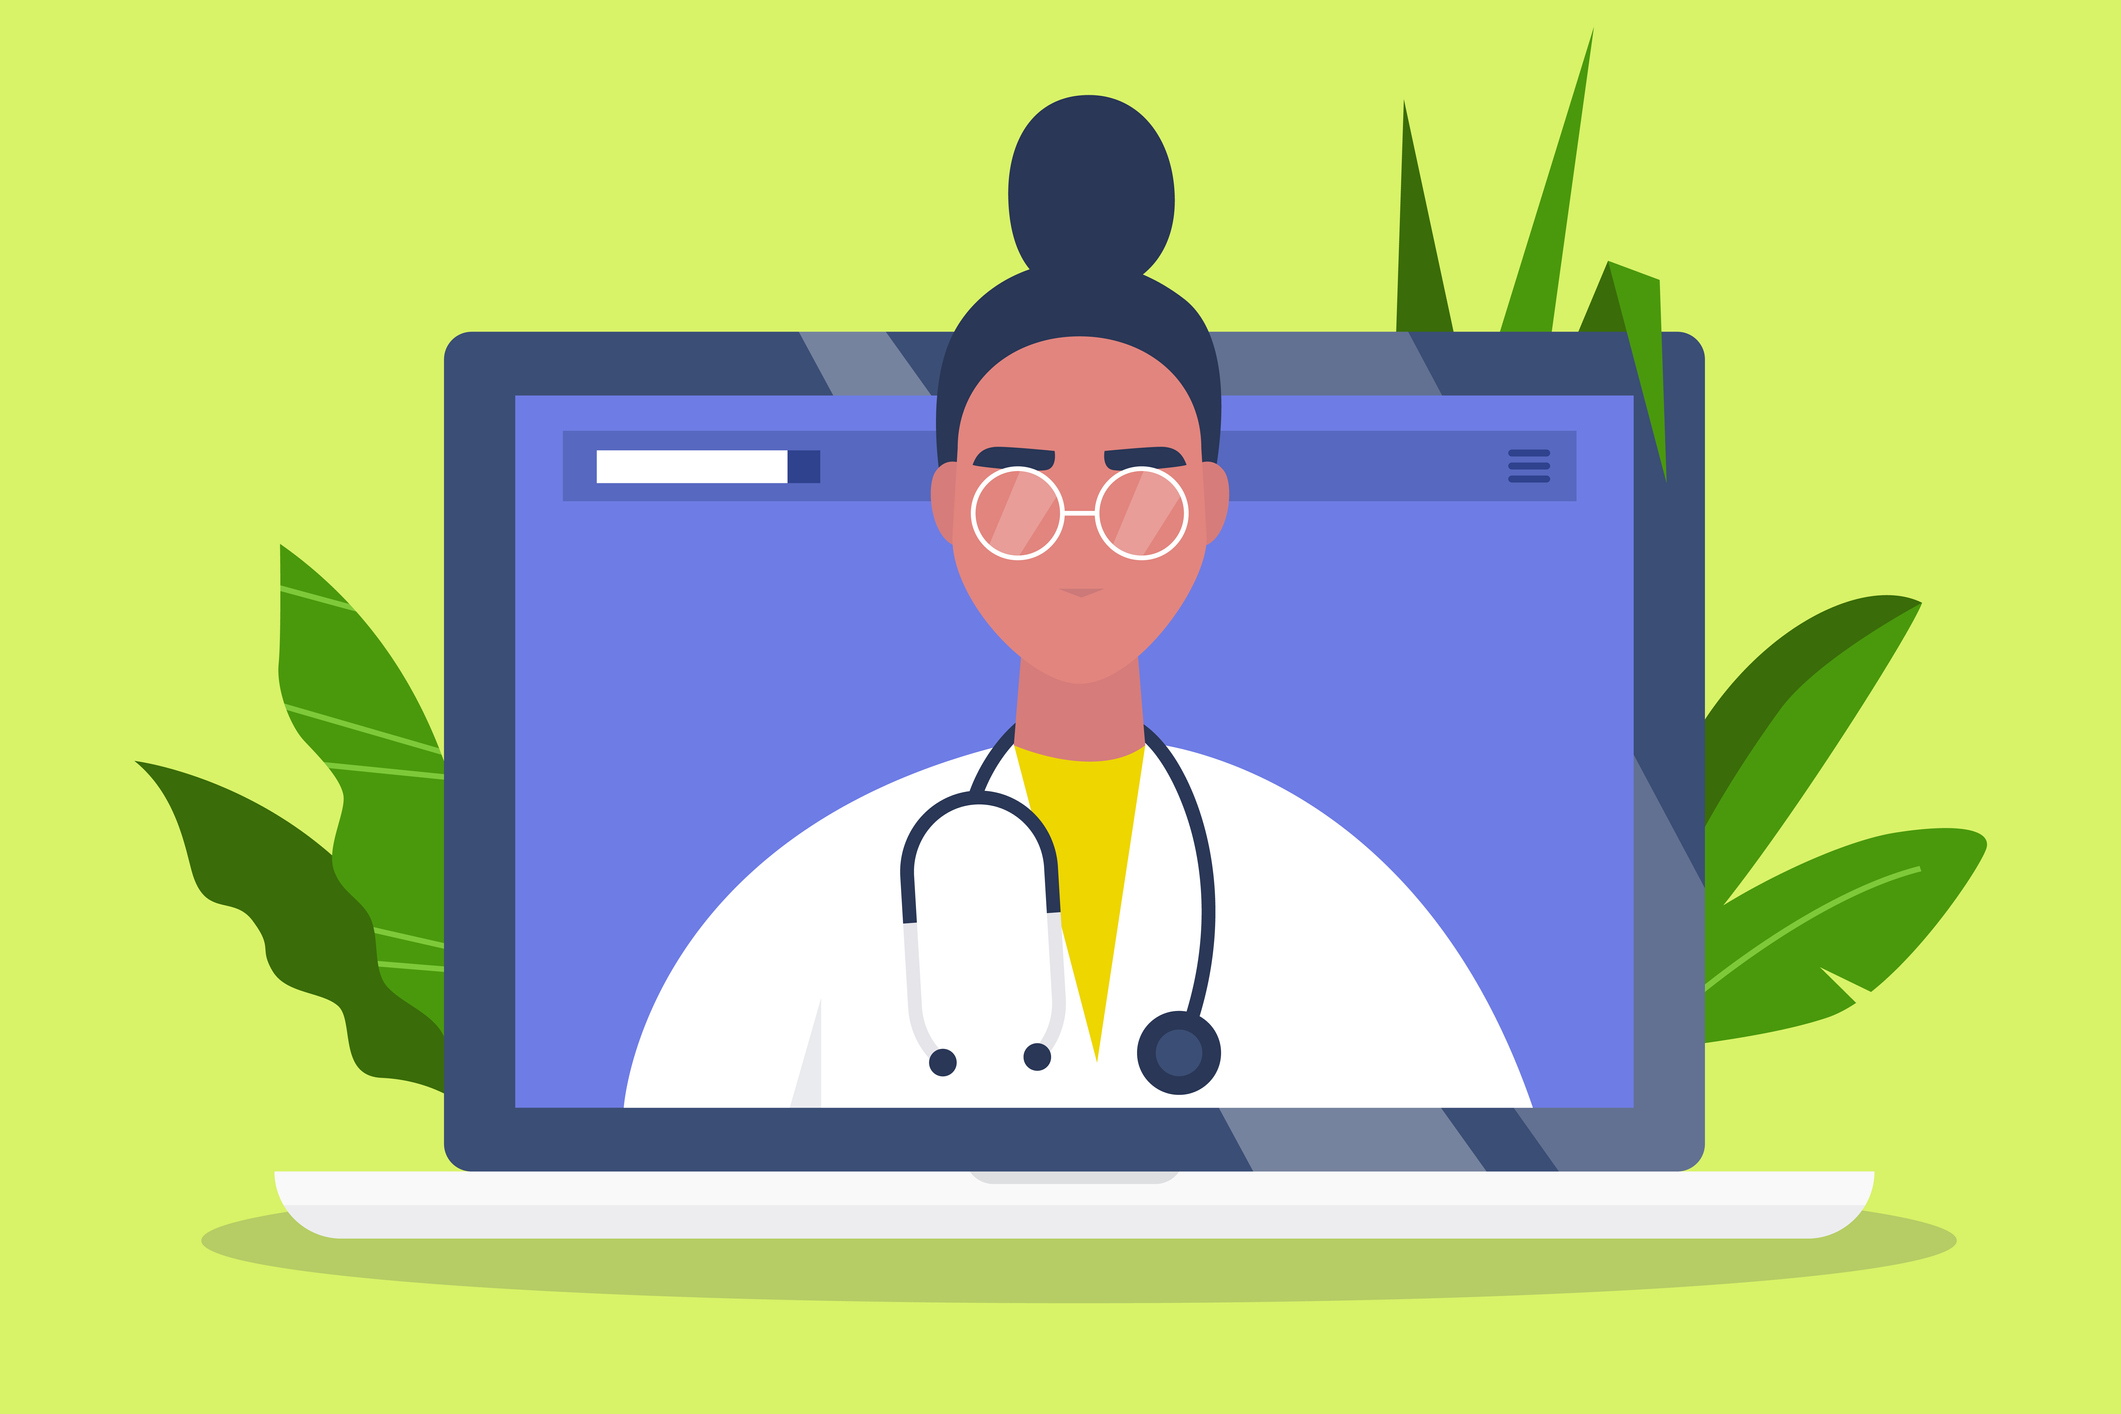 Illustration of female physician of colour on a laptop screen